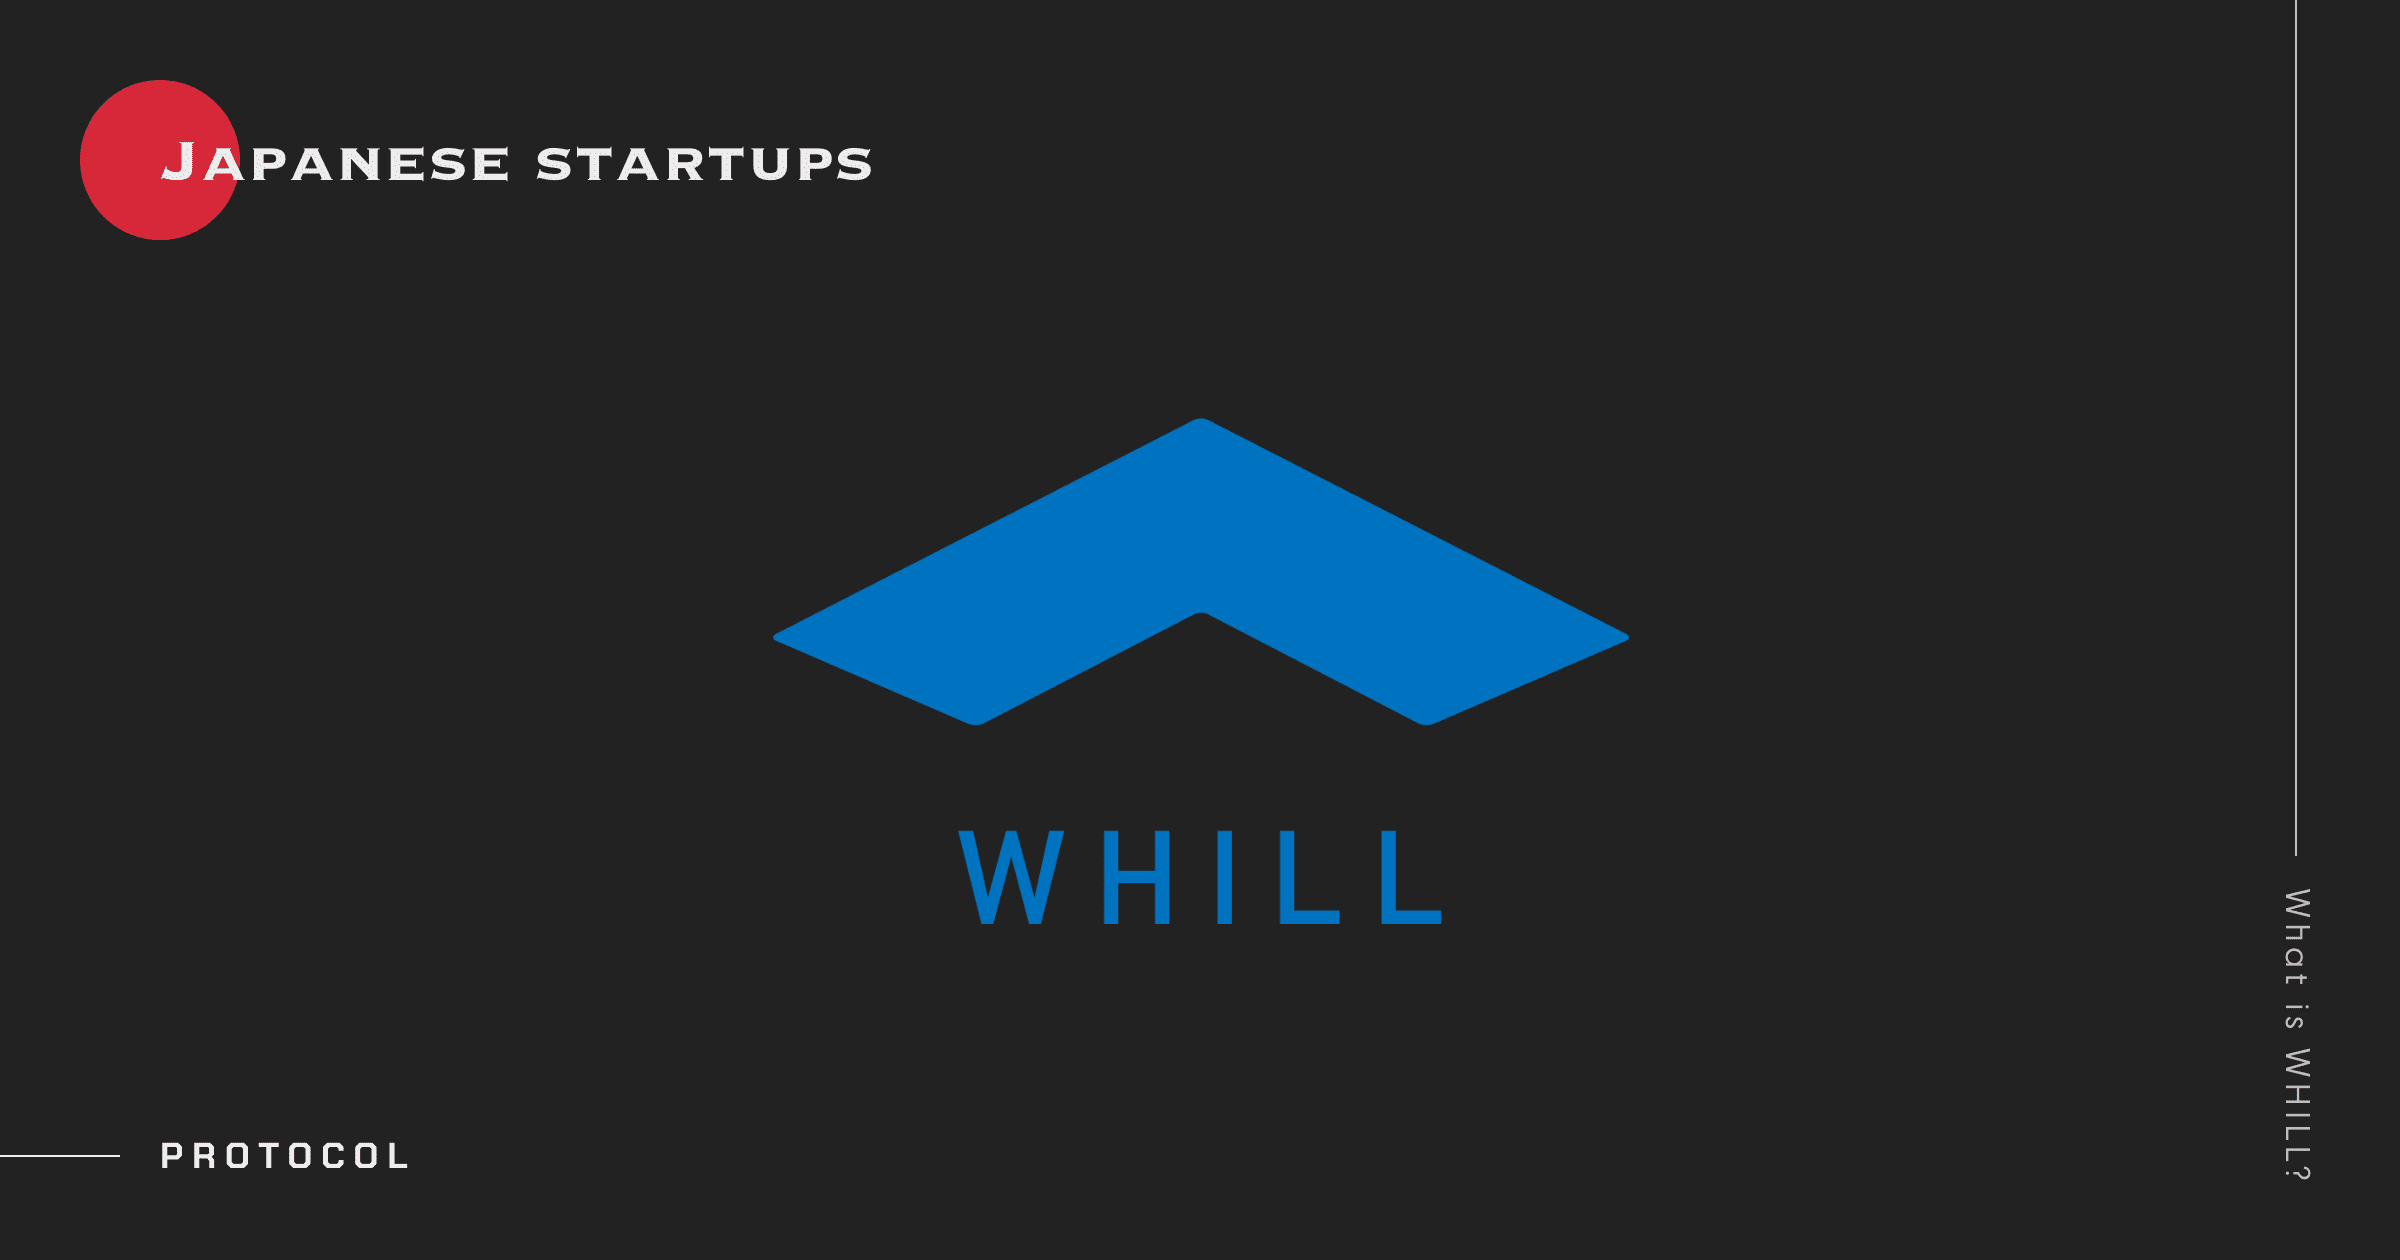 Japanese Startups: What Is WHILL?